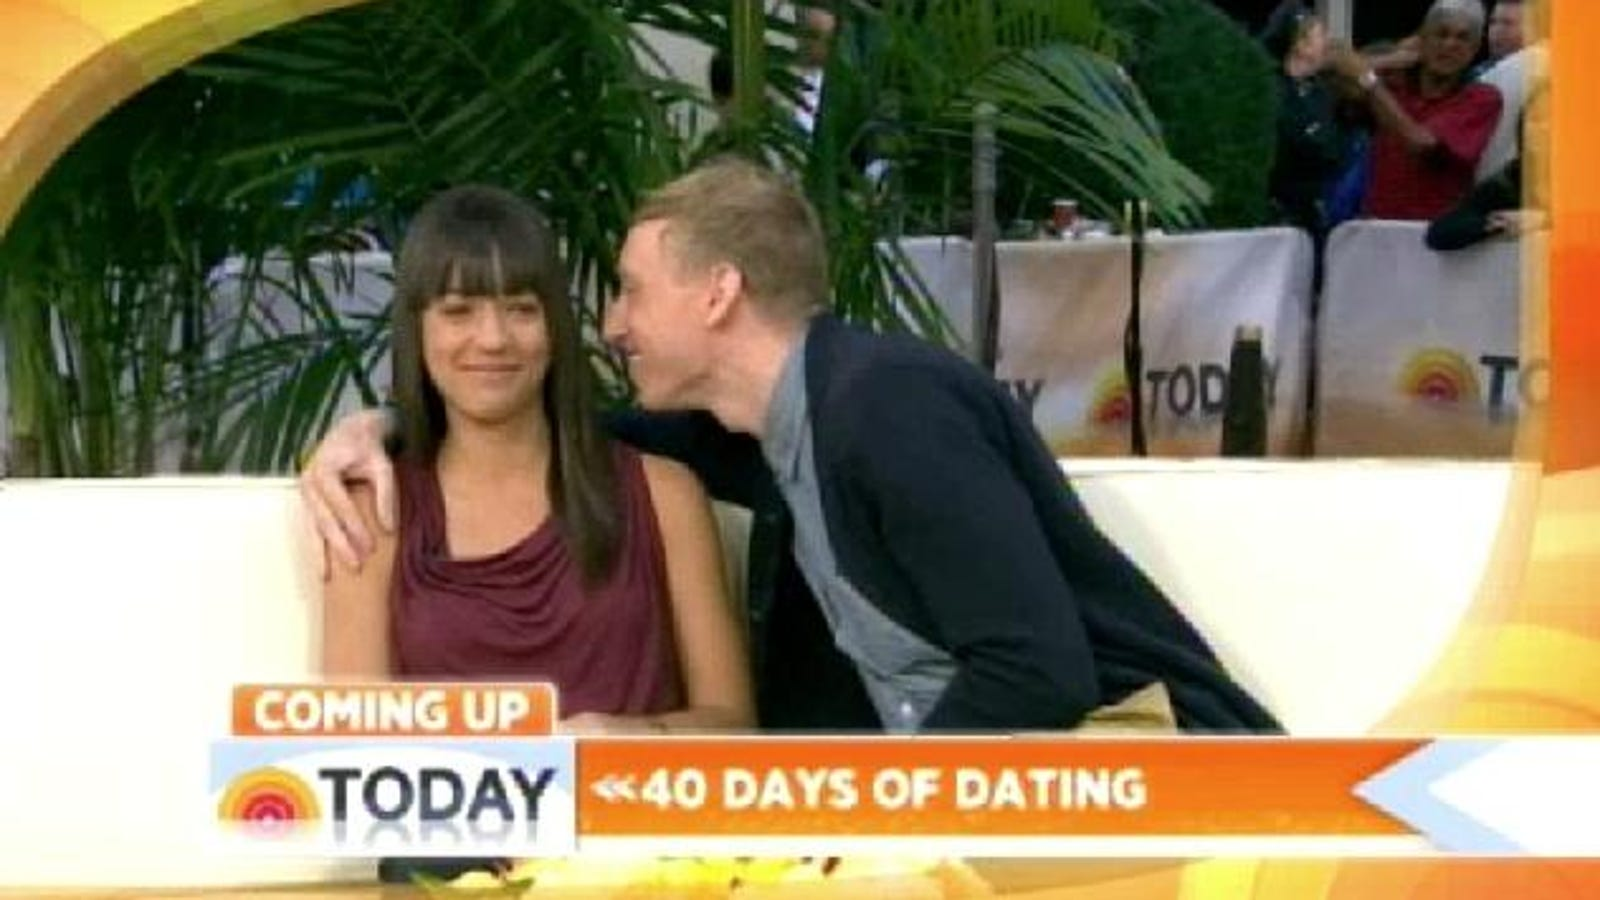 Forty days of dating what happened next video